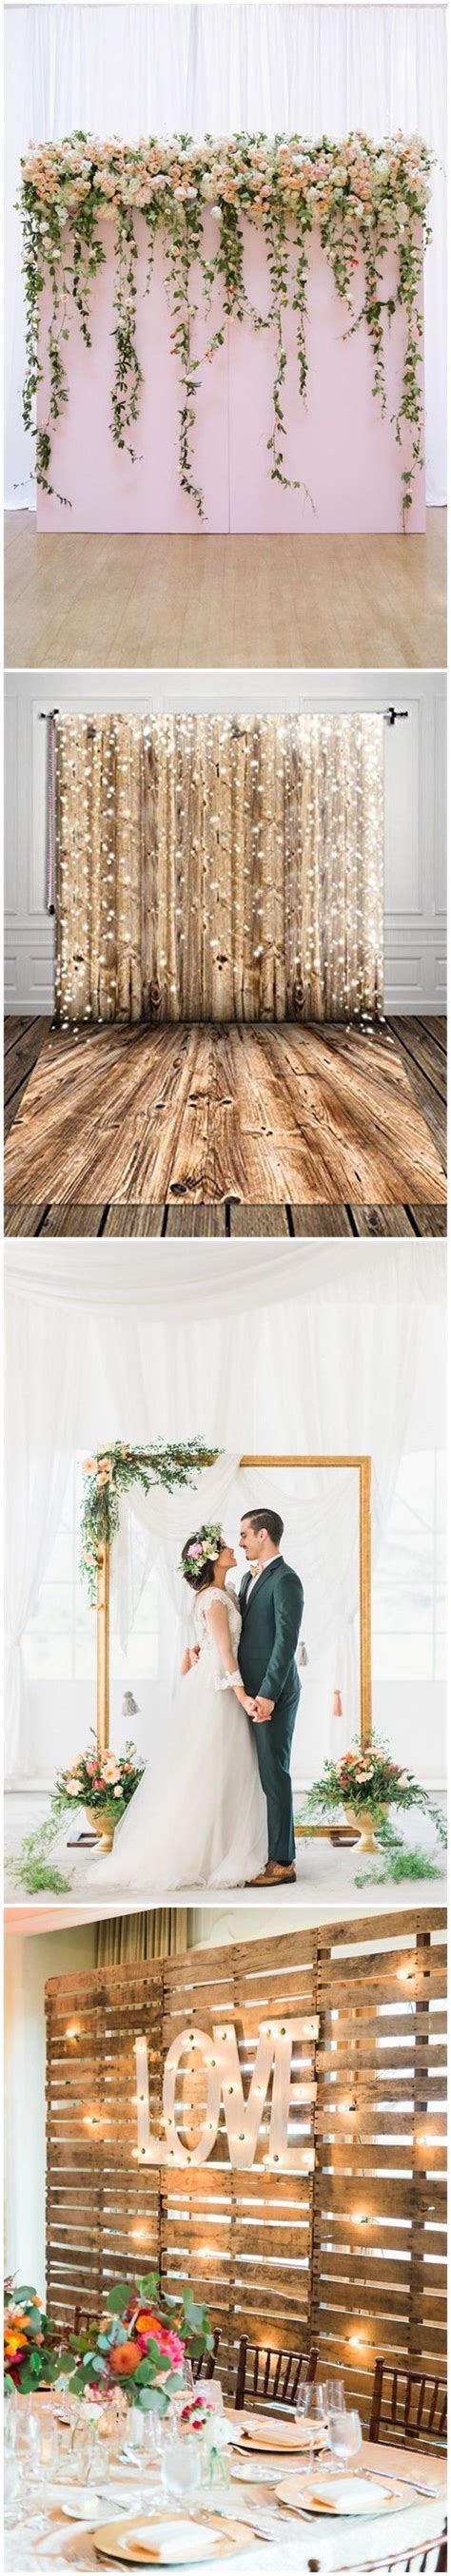 30 Unique and Breathtaking Wedding Backdrop Ideas Düğün